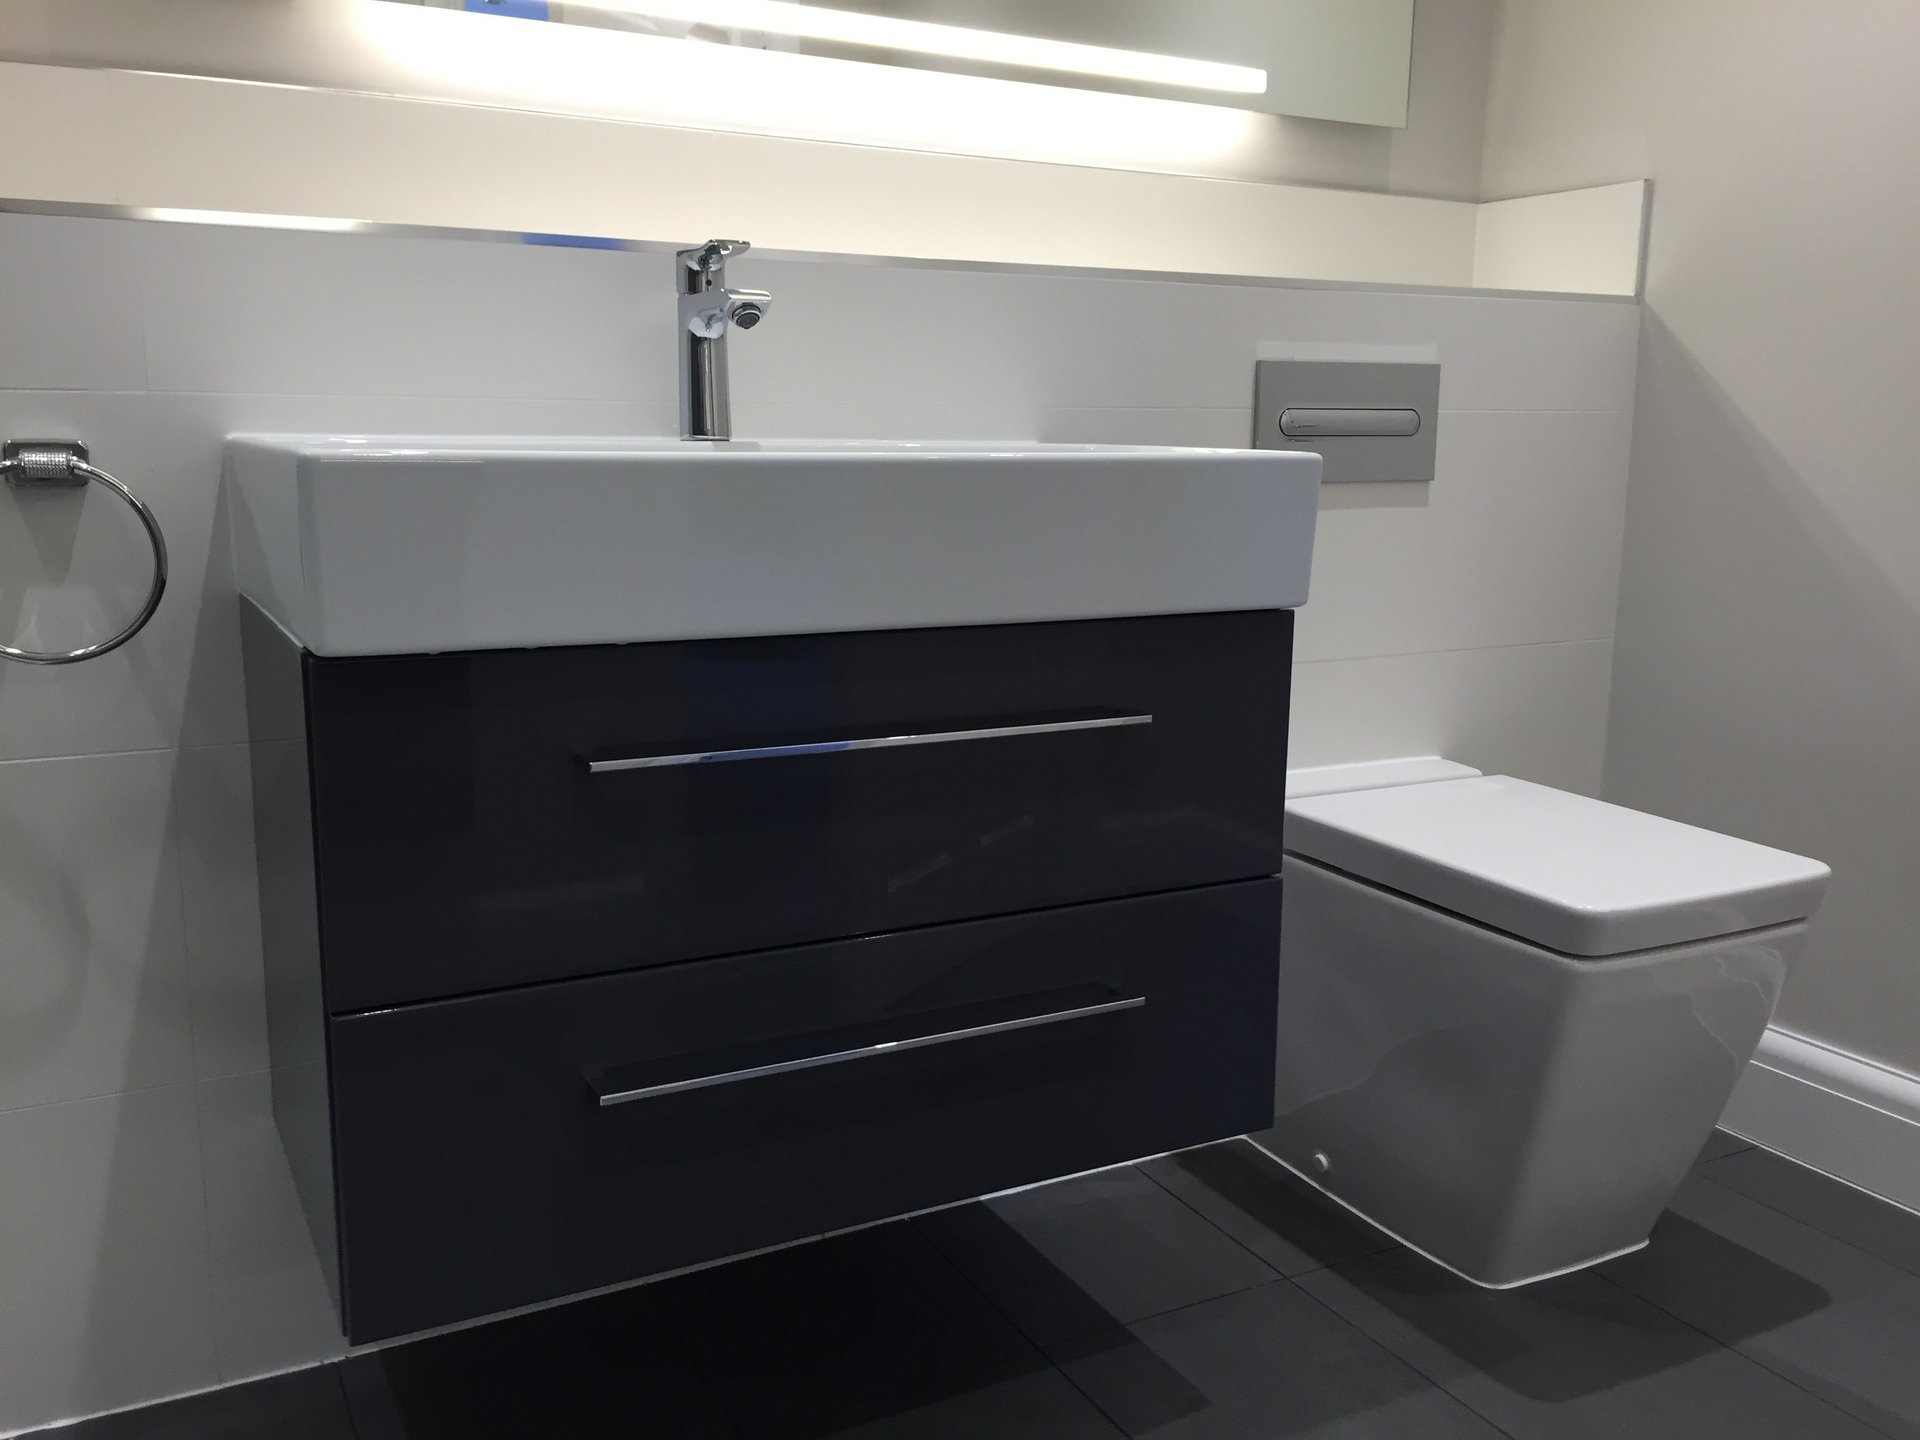 2018 bathroom trends what to look out for for Bathroom trends australia 2018